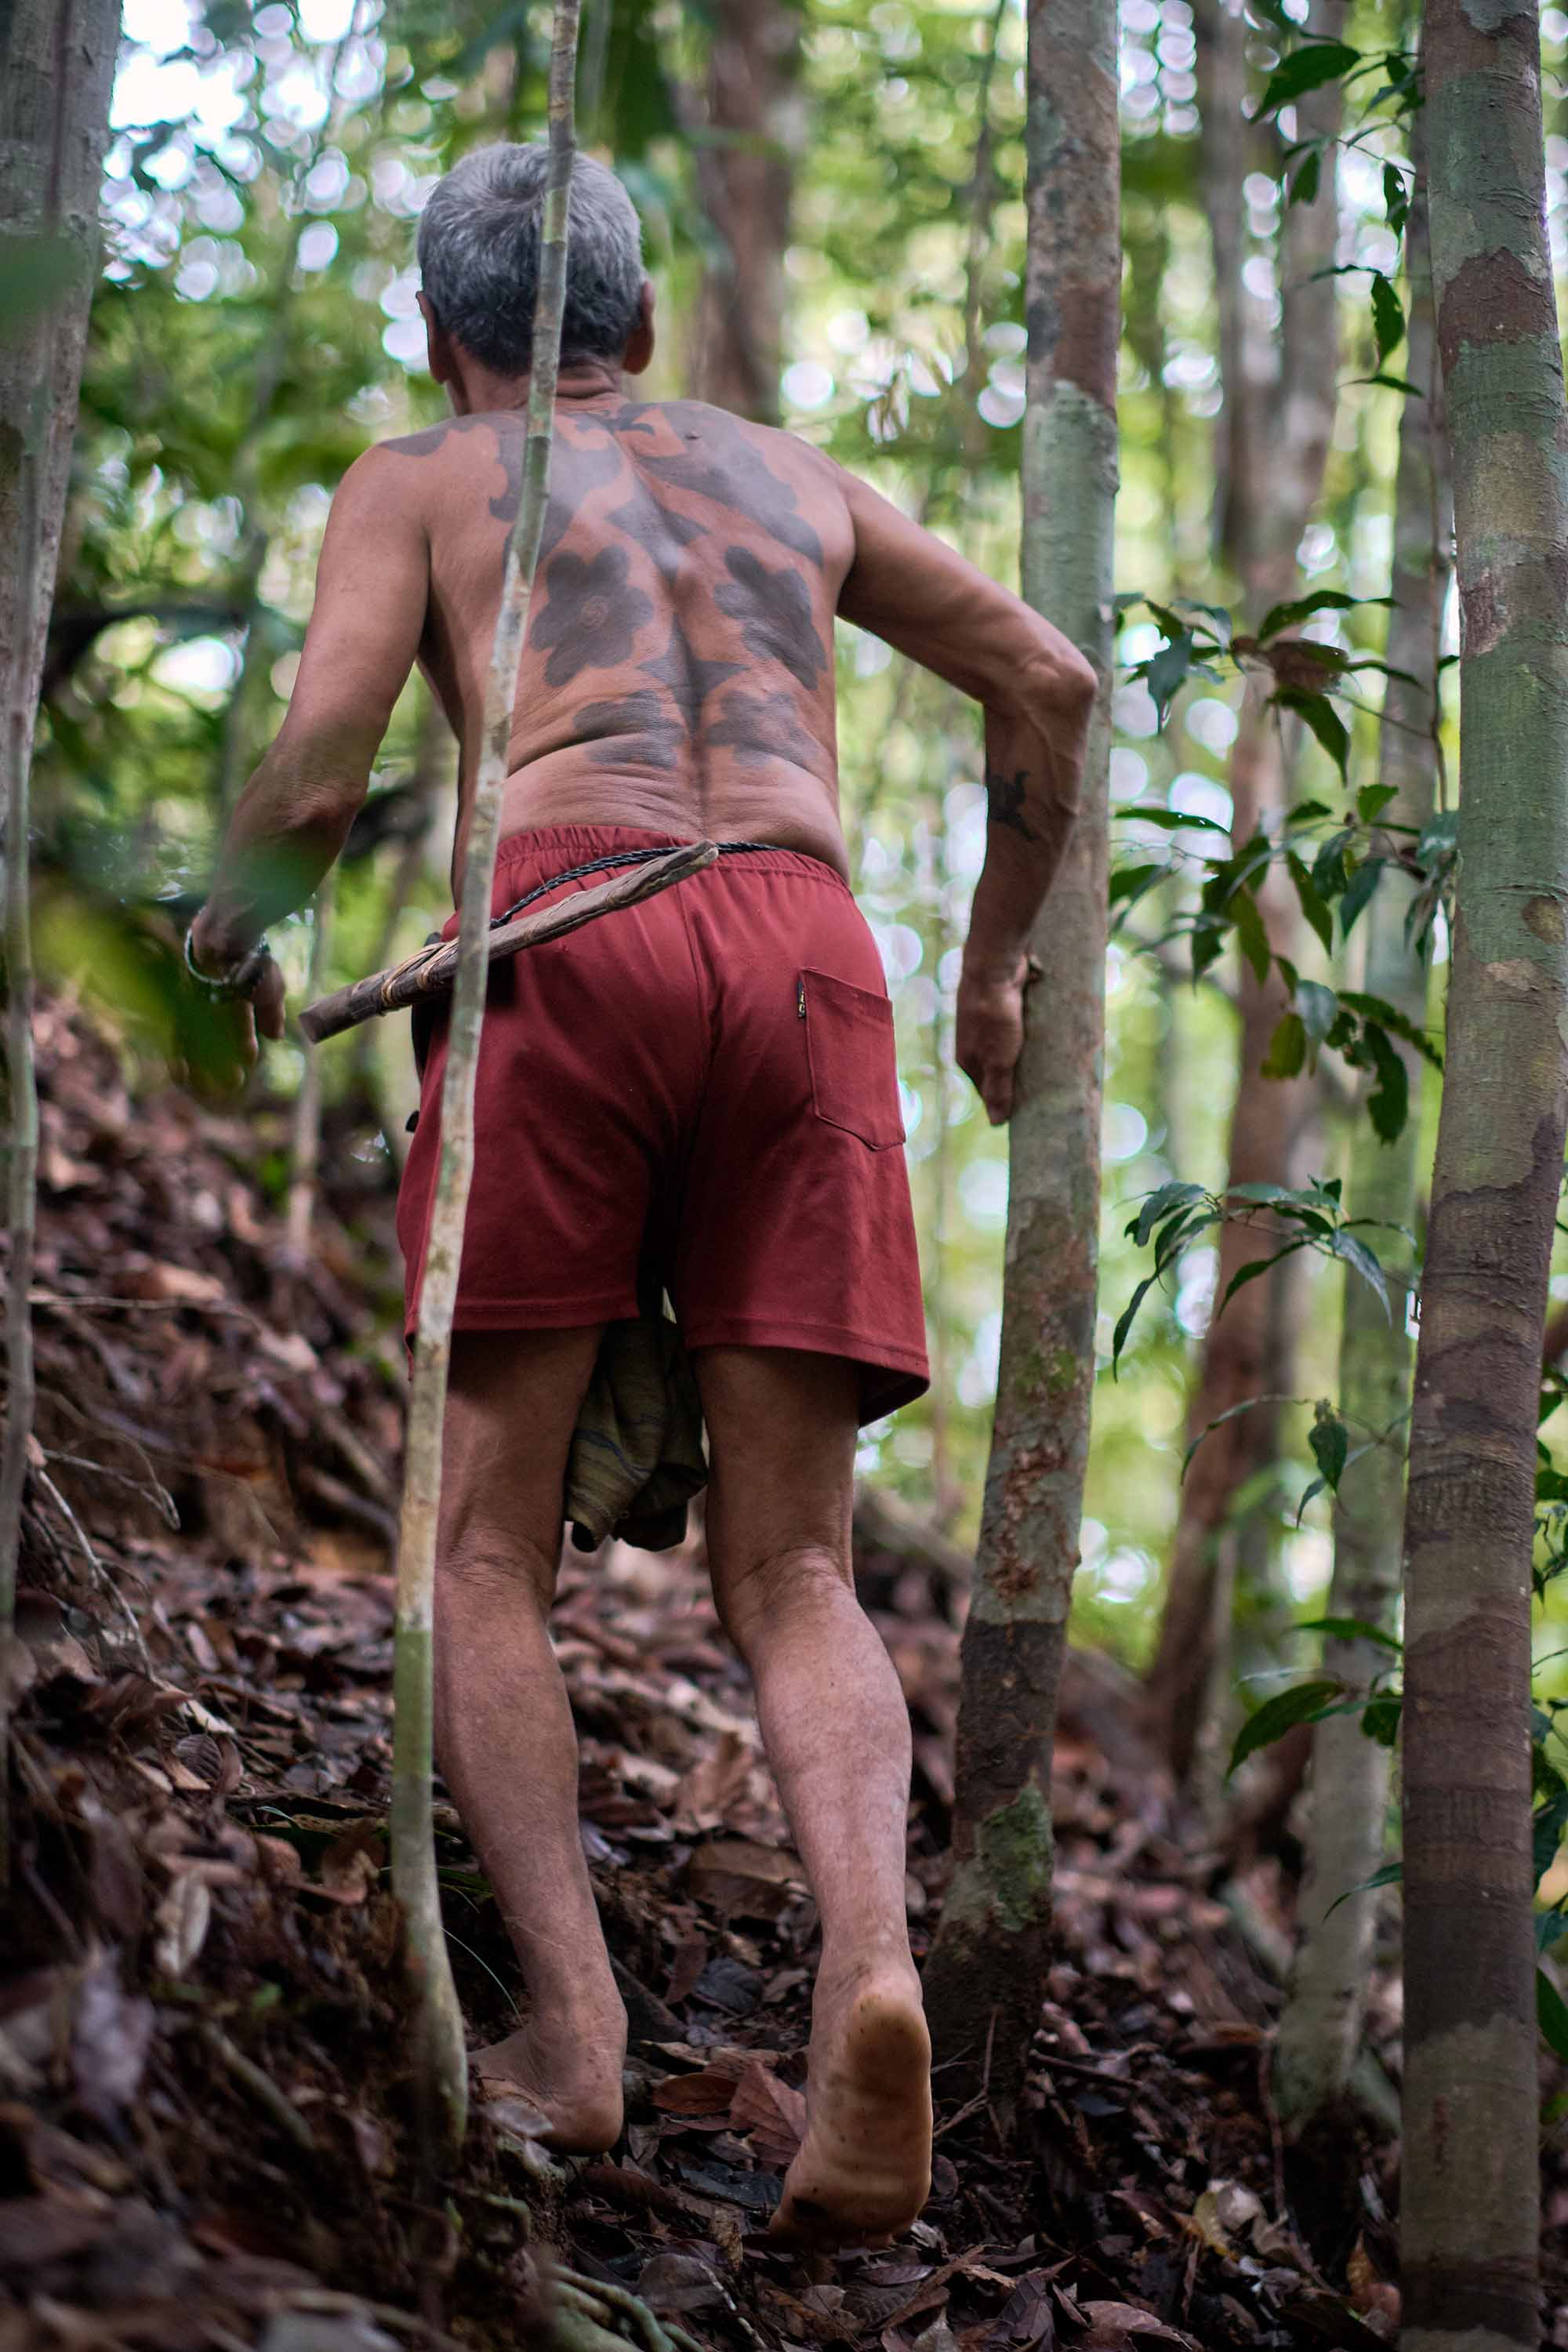 Shirtless Sungai Utik elder Apai Janggut in red shorts walks uphill barefoot in his community's forestland